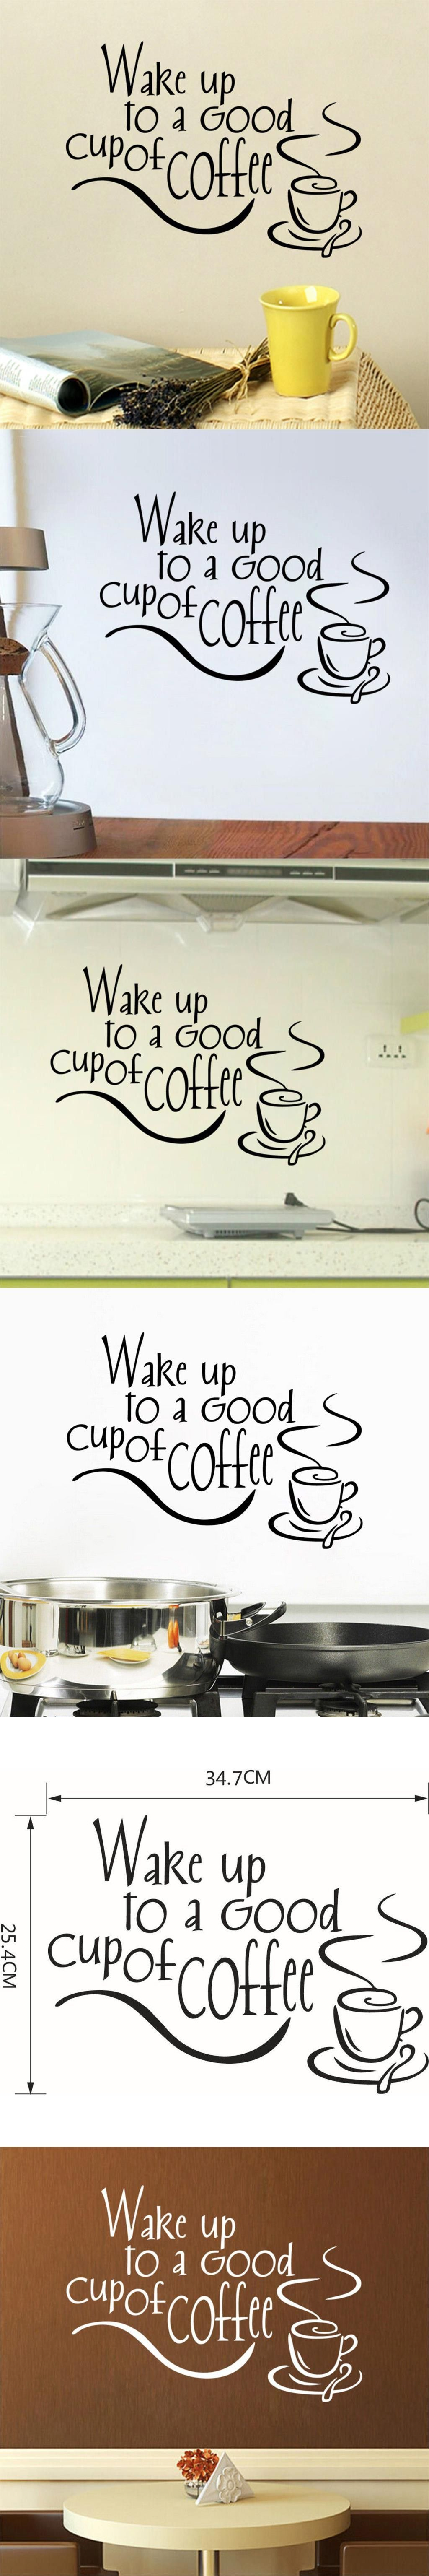 3 Jolting Tips Coffee Quotes Letter Board lemon coffee cake